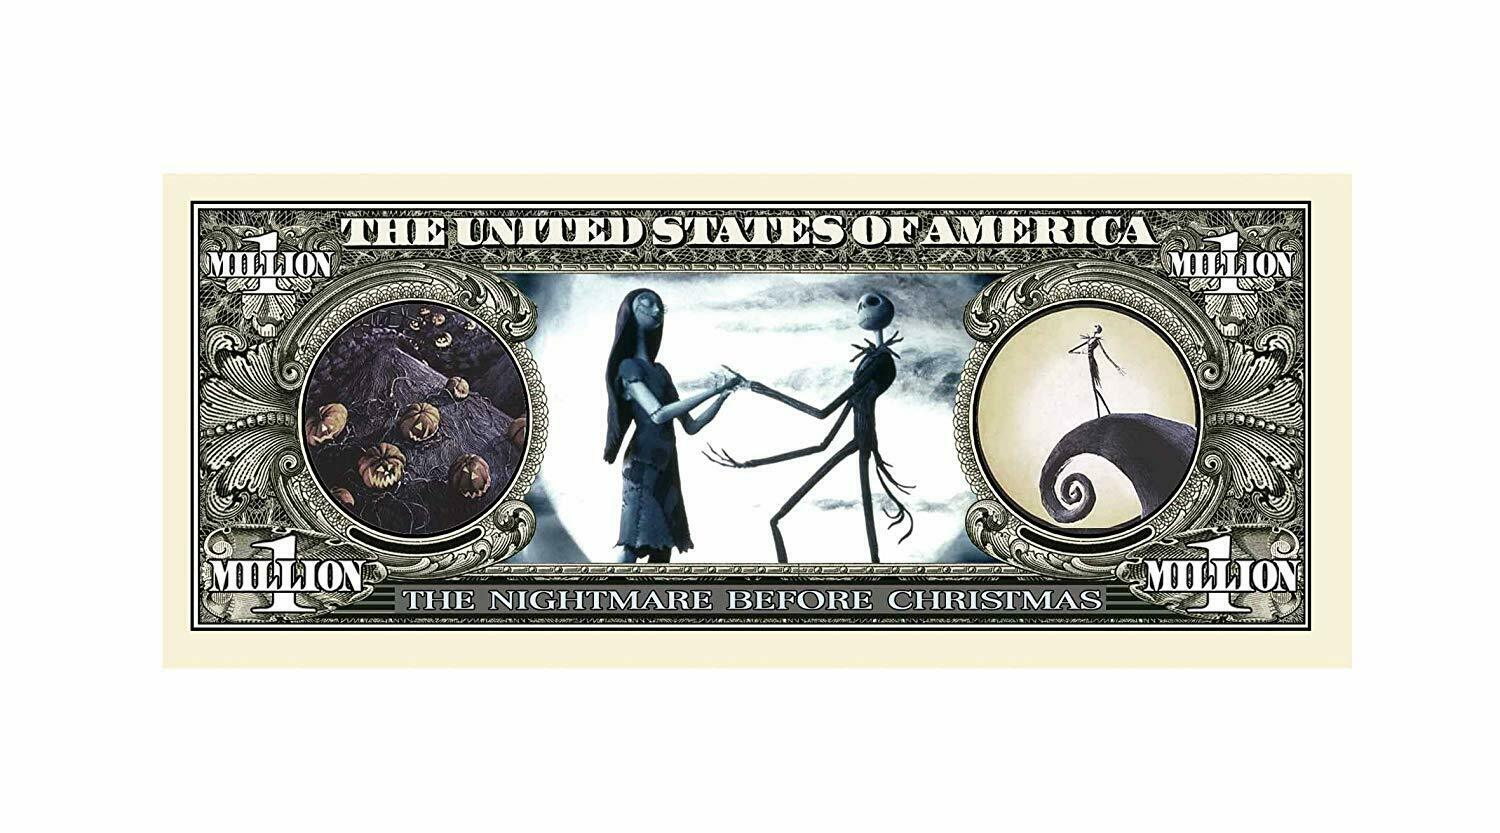 5 Nightmare Before Christmas Collectible Dollar Bill Novelty Note Lot Без бренда - фотография #3